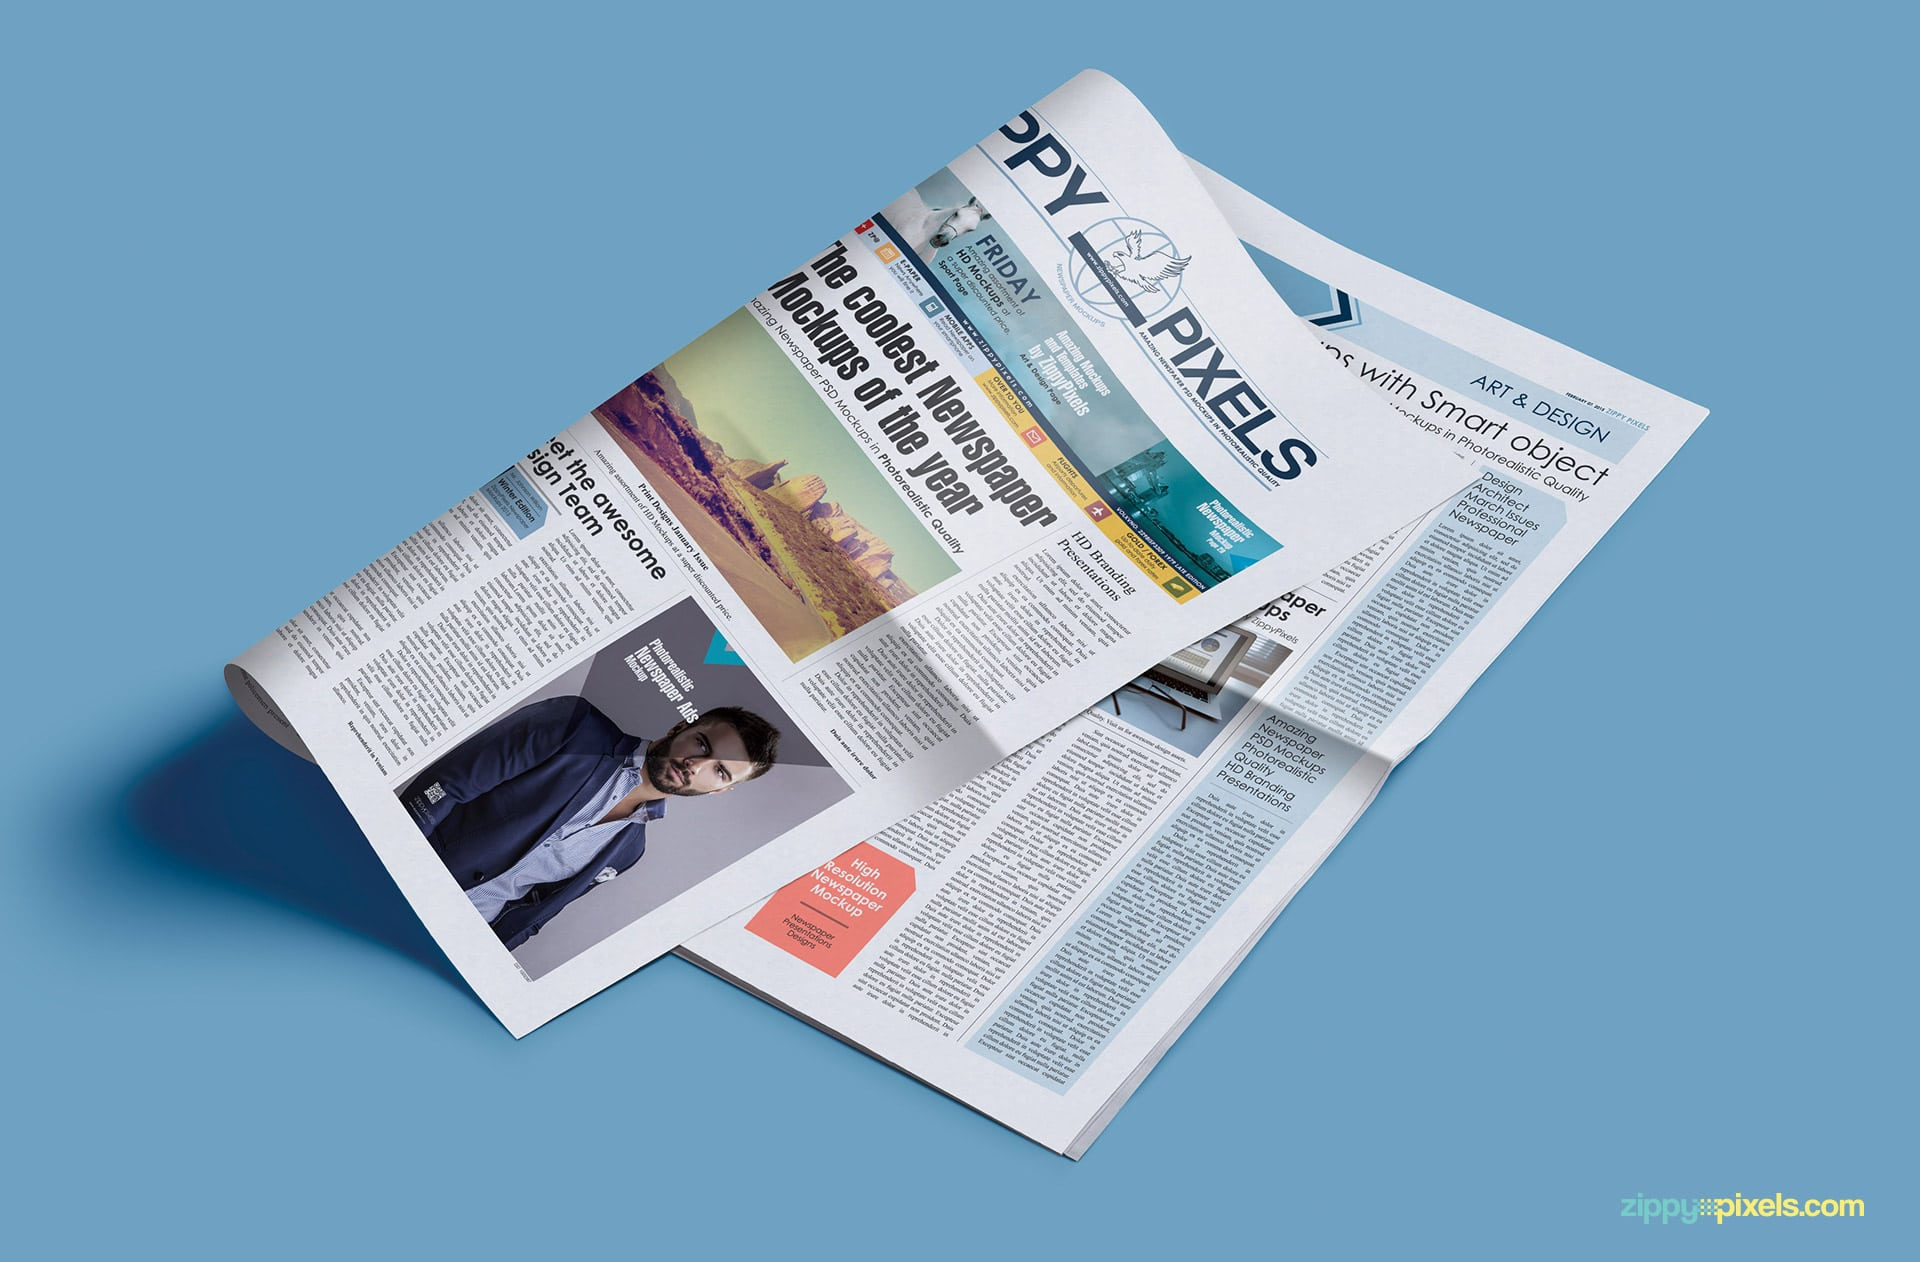 Photorealistic newspaper mockups showing turned page with (2col x 5.69in) small ad